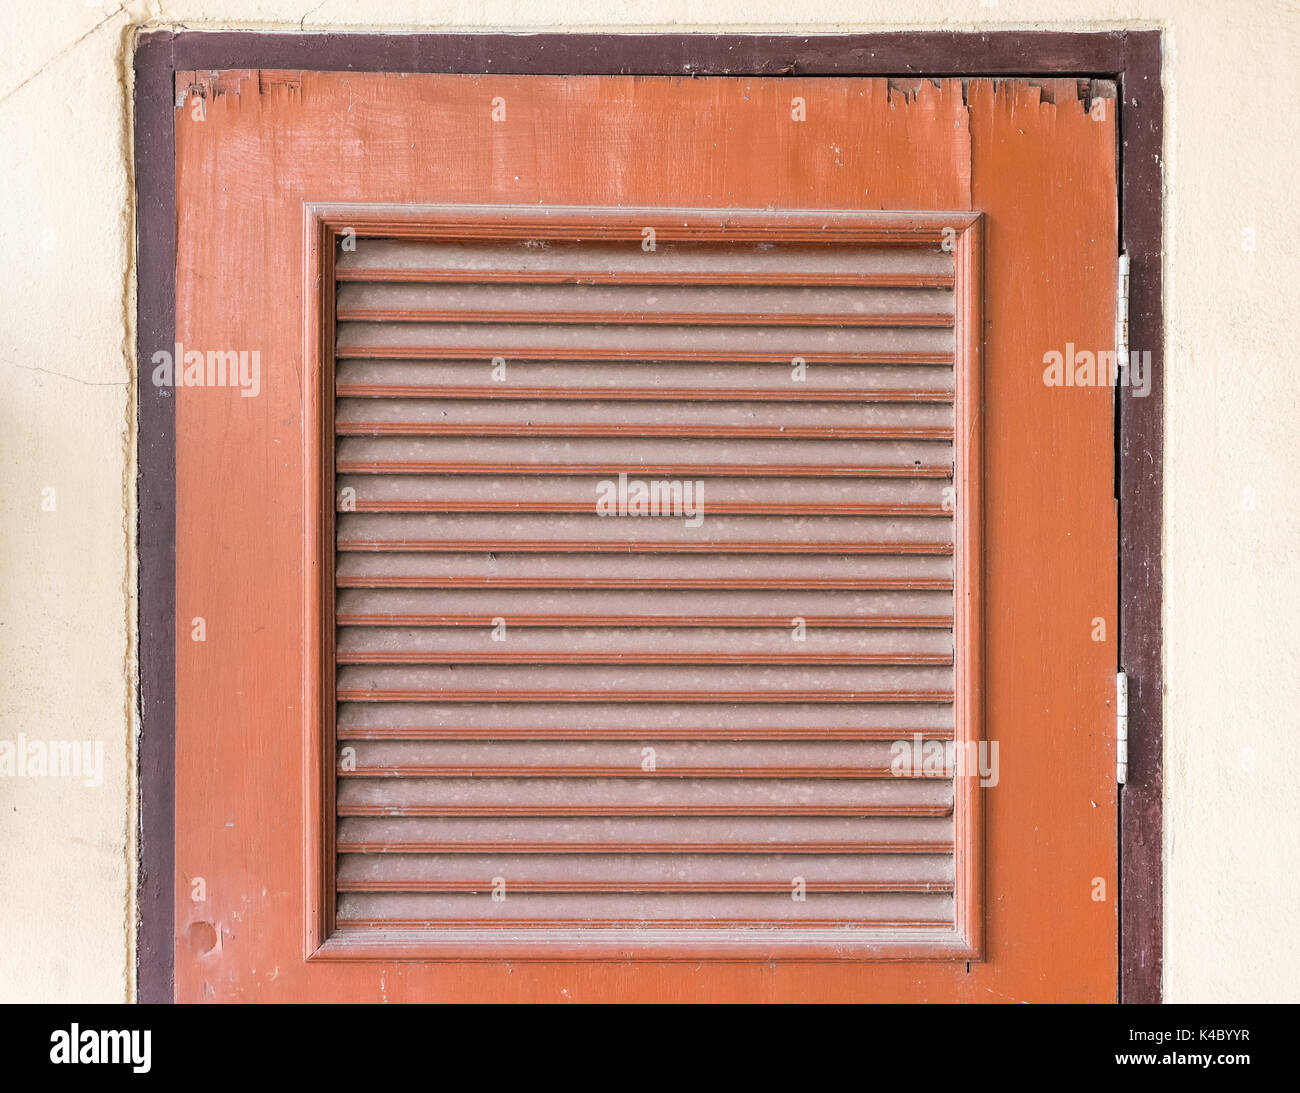 Old wooden door with louver for the ventilationstorage room in the school & Old wooden door with louver for the ventilationstorage room in ...